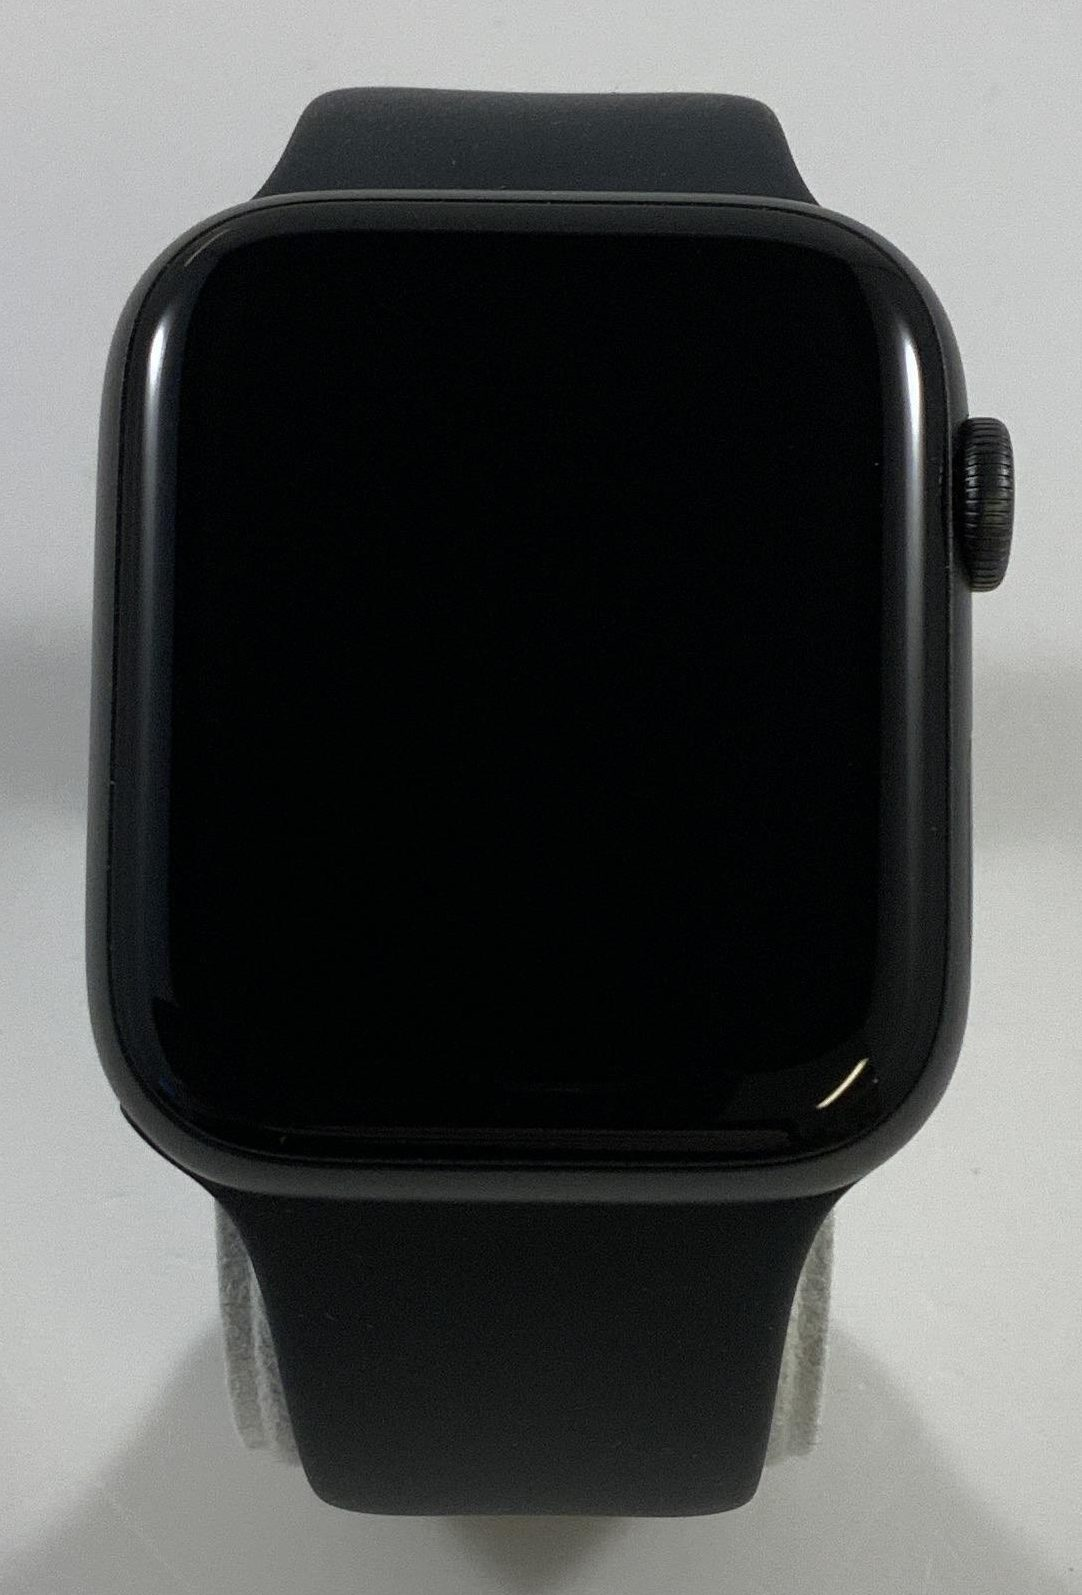 Watch Series 5 Aluminum Cellular (44mm), Space Gray, imagen 1